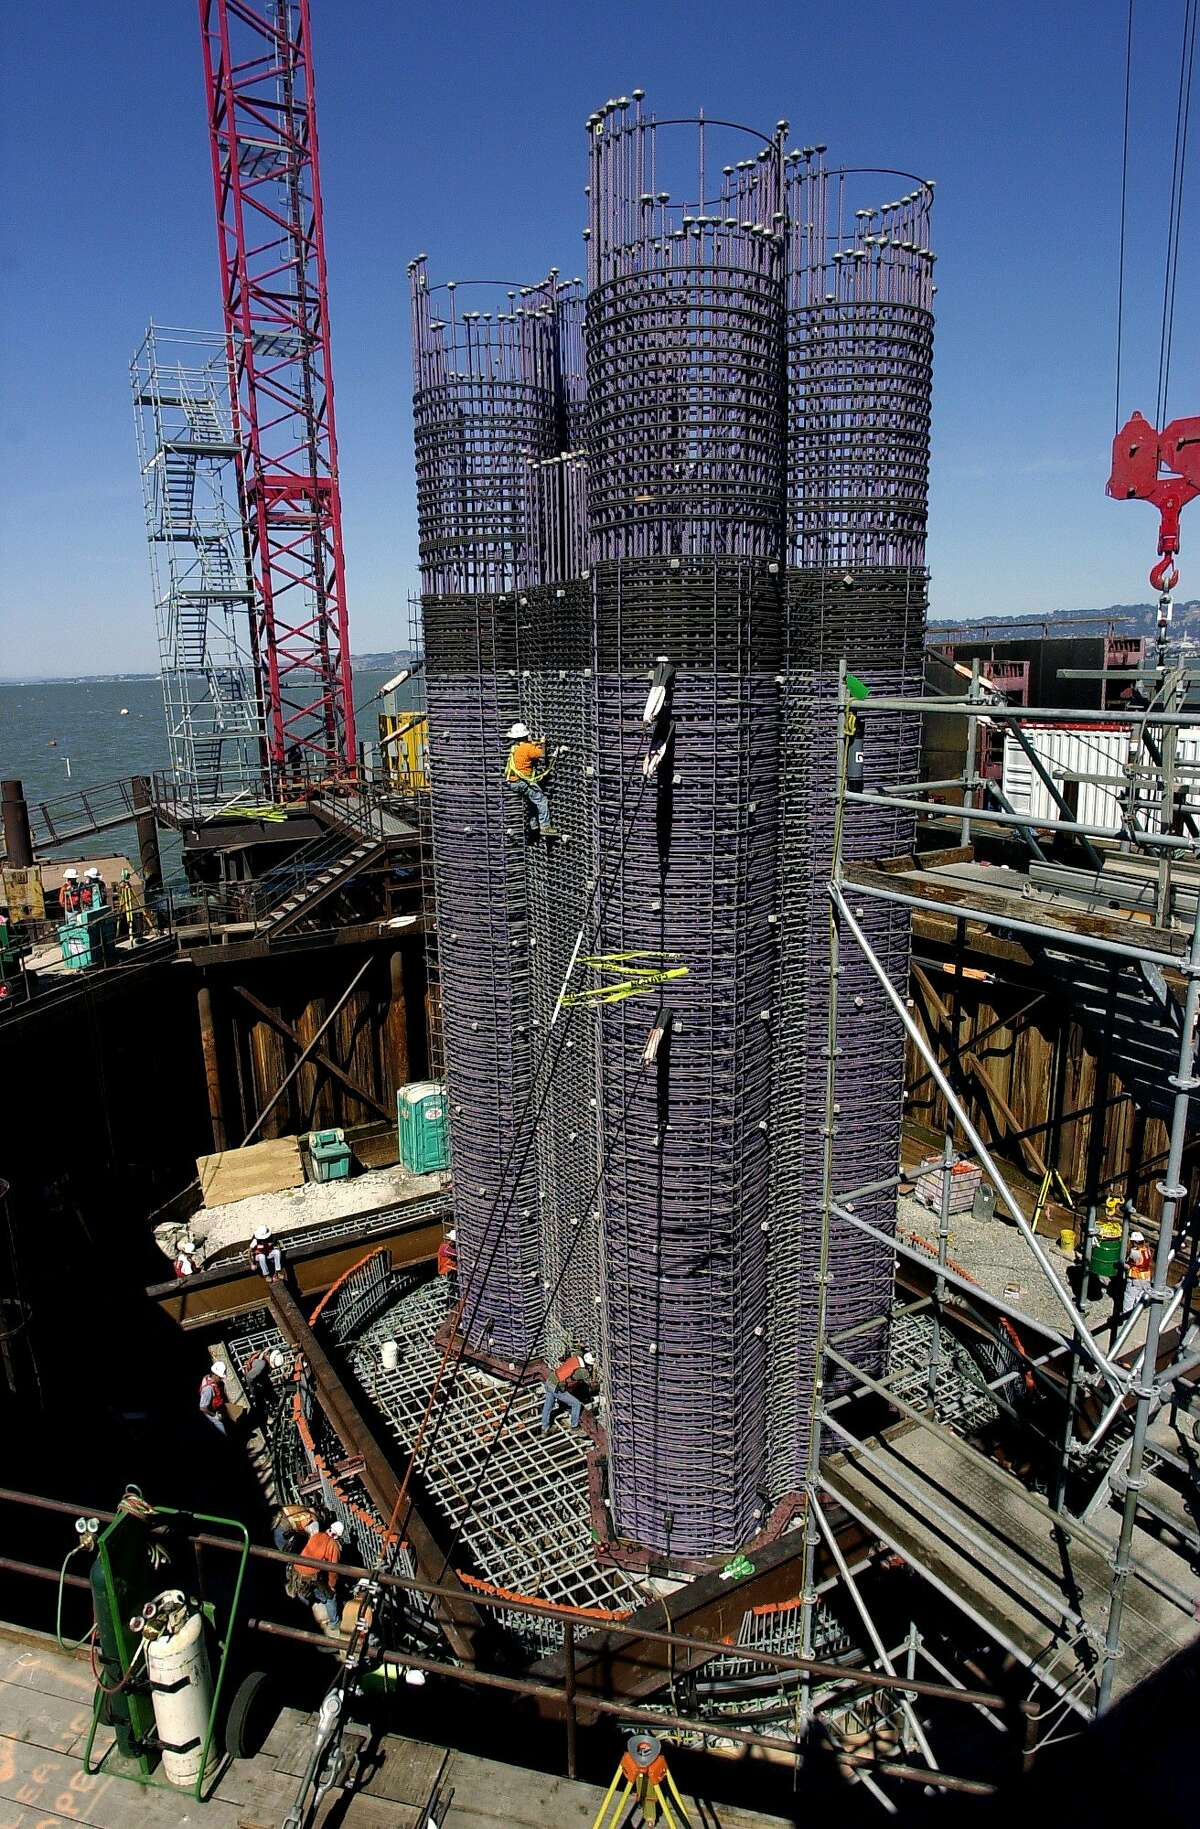 baybridge120_db.jpg Workers ready one of many columns under construction now made of rebar, E16E, inside a coffer dam, to be poured with 400 cubic meters of concrete. The columns will provide support for the deck of the new Eastern span of the San Francisco-Oakland Bay Bridge now under construction and less than 10 per cent complete. Bay Bridge construction of the East span. The contractor for this part of the project is KFM, a joint venture partnership of three construction giants: Kiewit Pacific of Vancouver, WA; FCI Constructors Northern Division of San Jose; and Manson Construction Company of Seattle. 9/17/03 in Oakland. DARRYL BUSH / The Chronicle